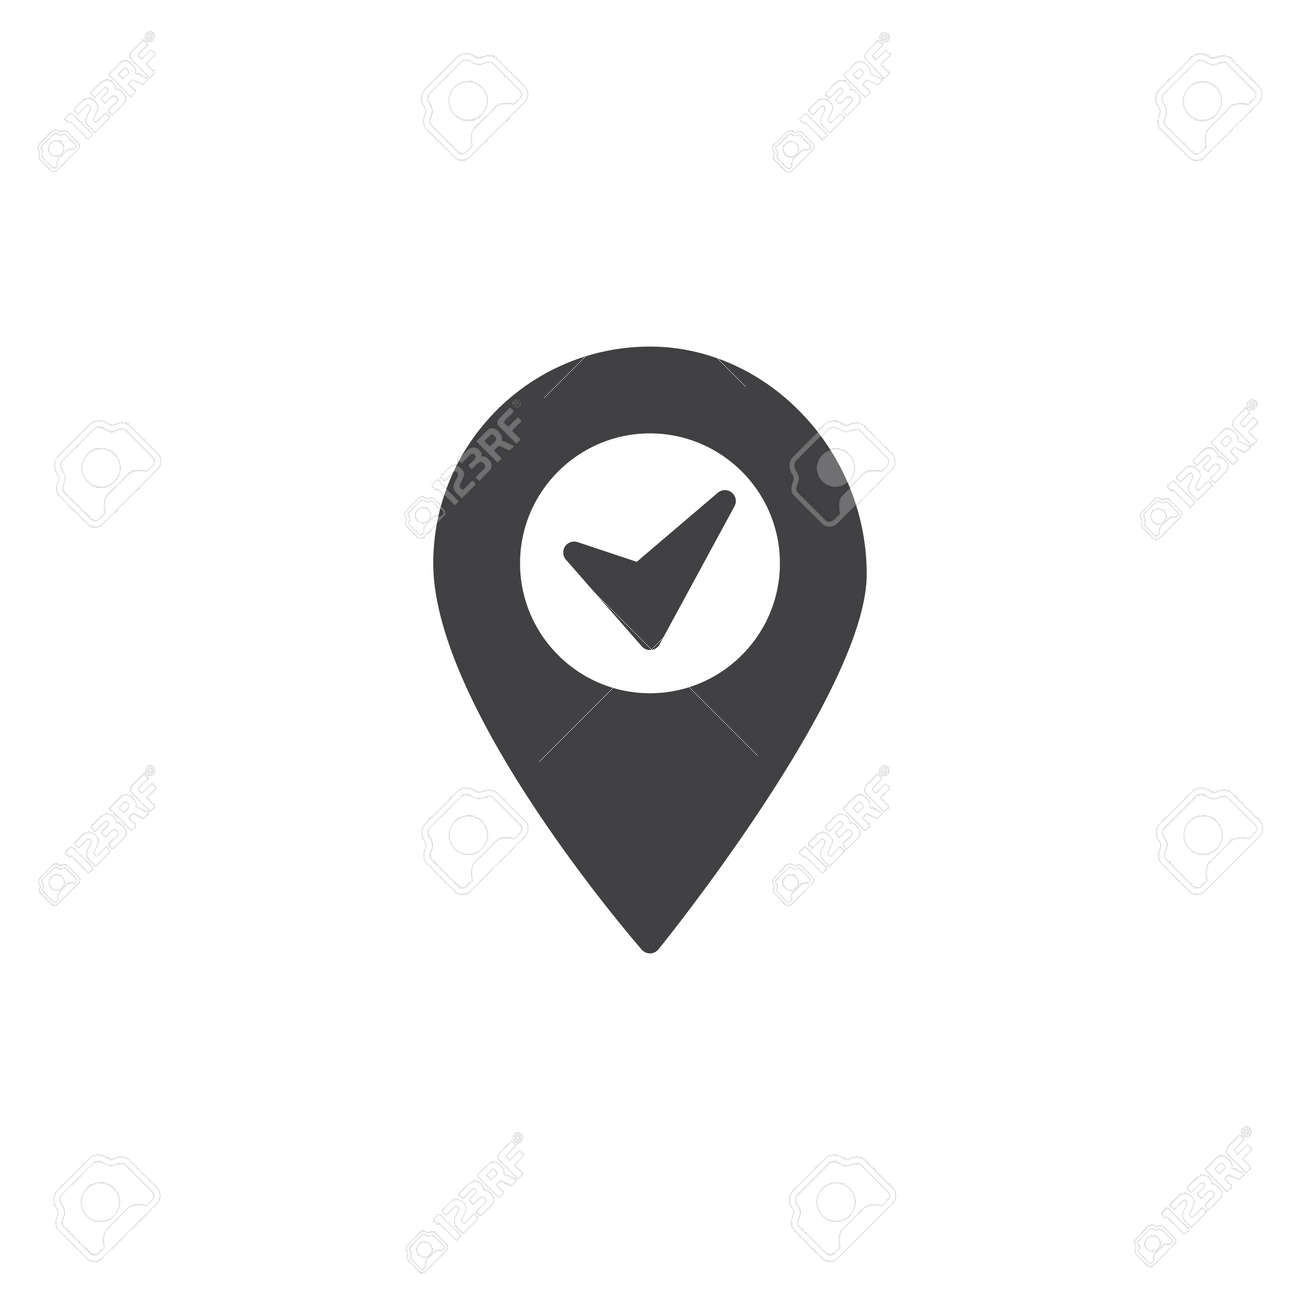 location pin with check mark vector icon filled flat sign for